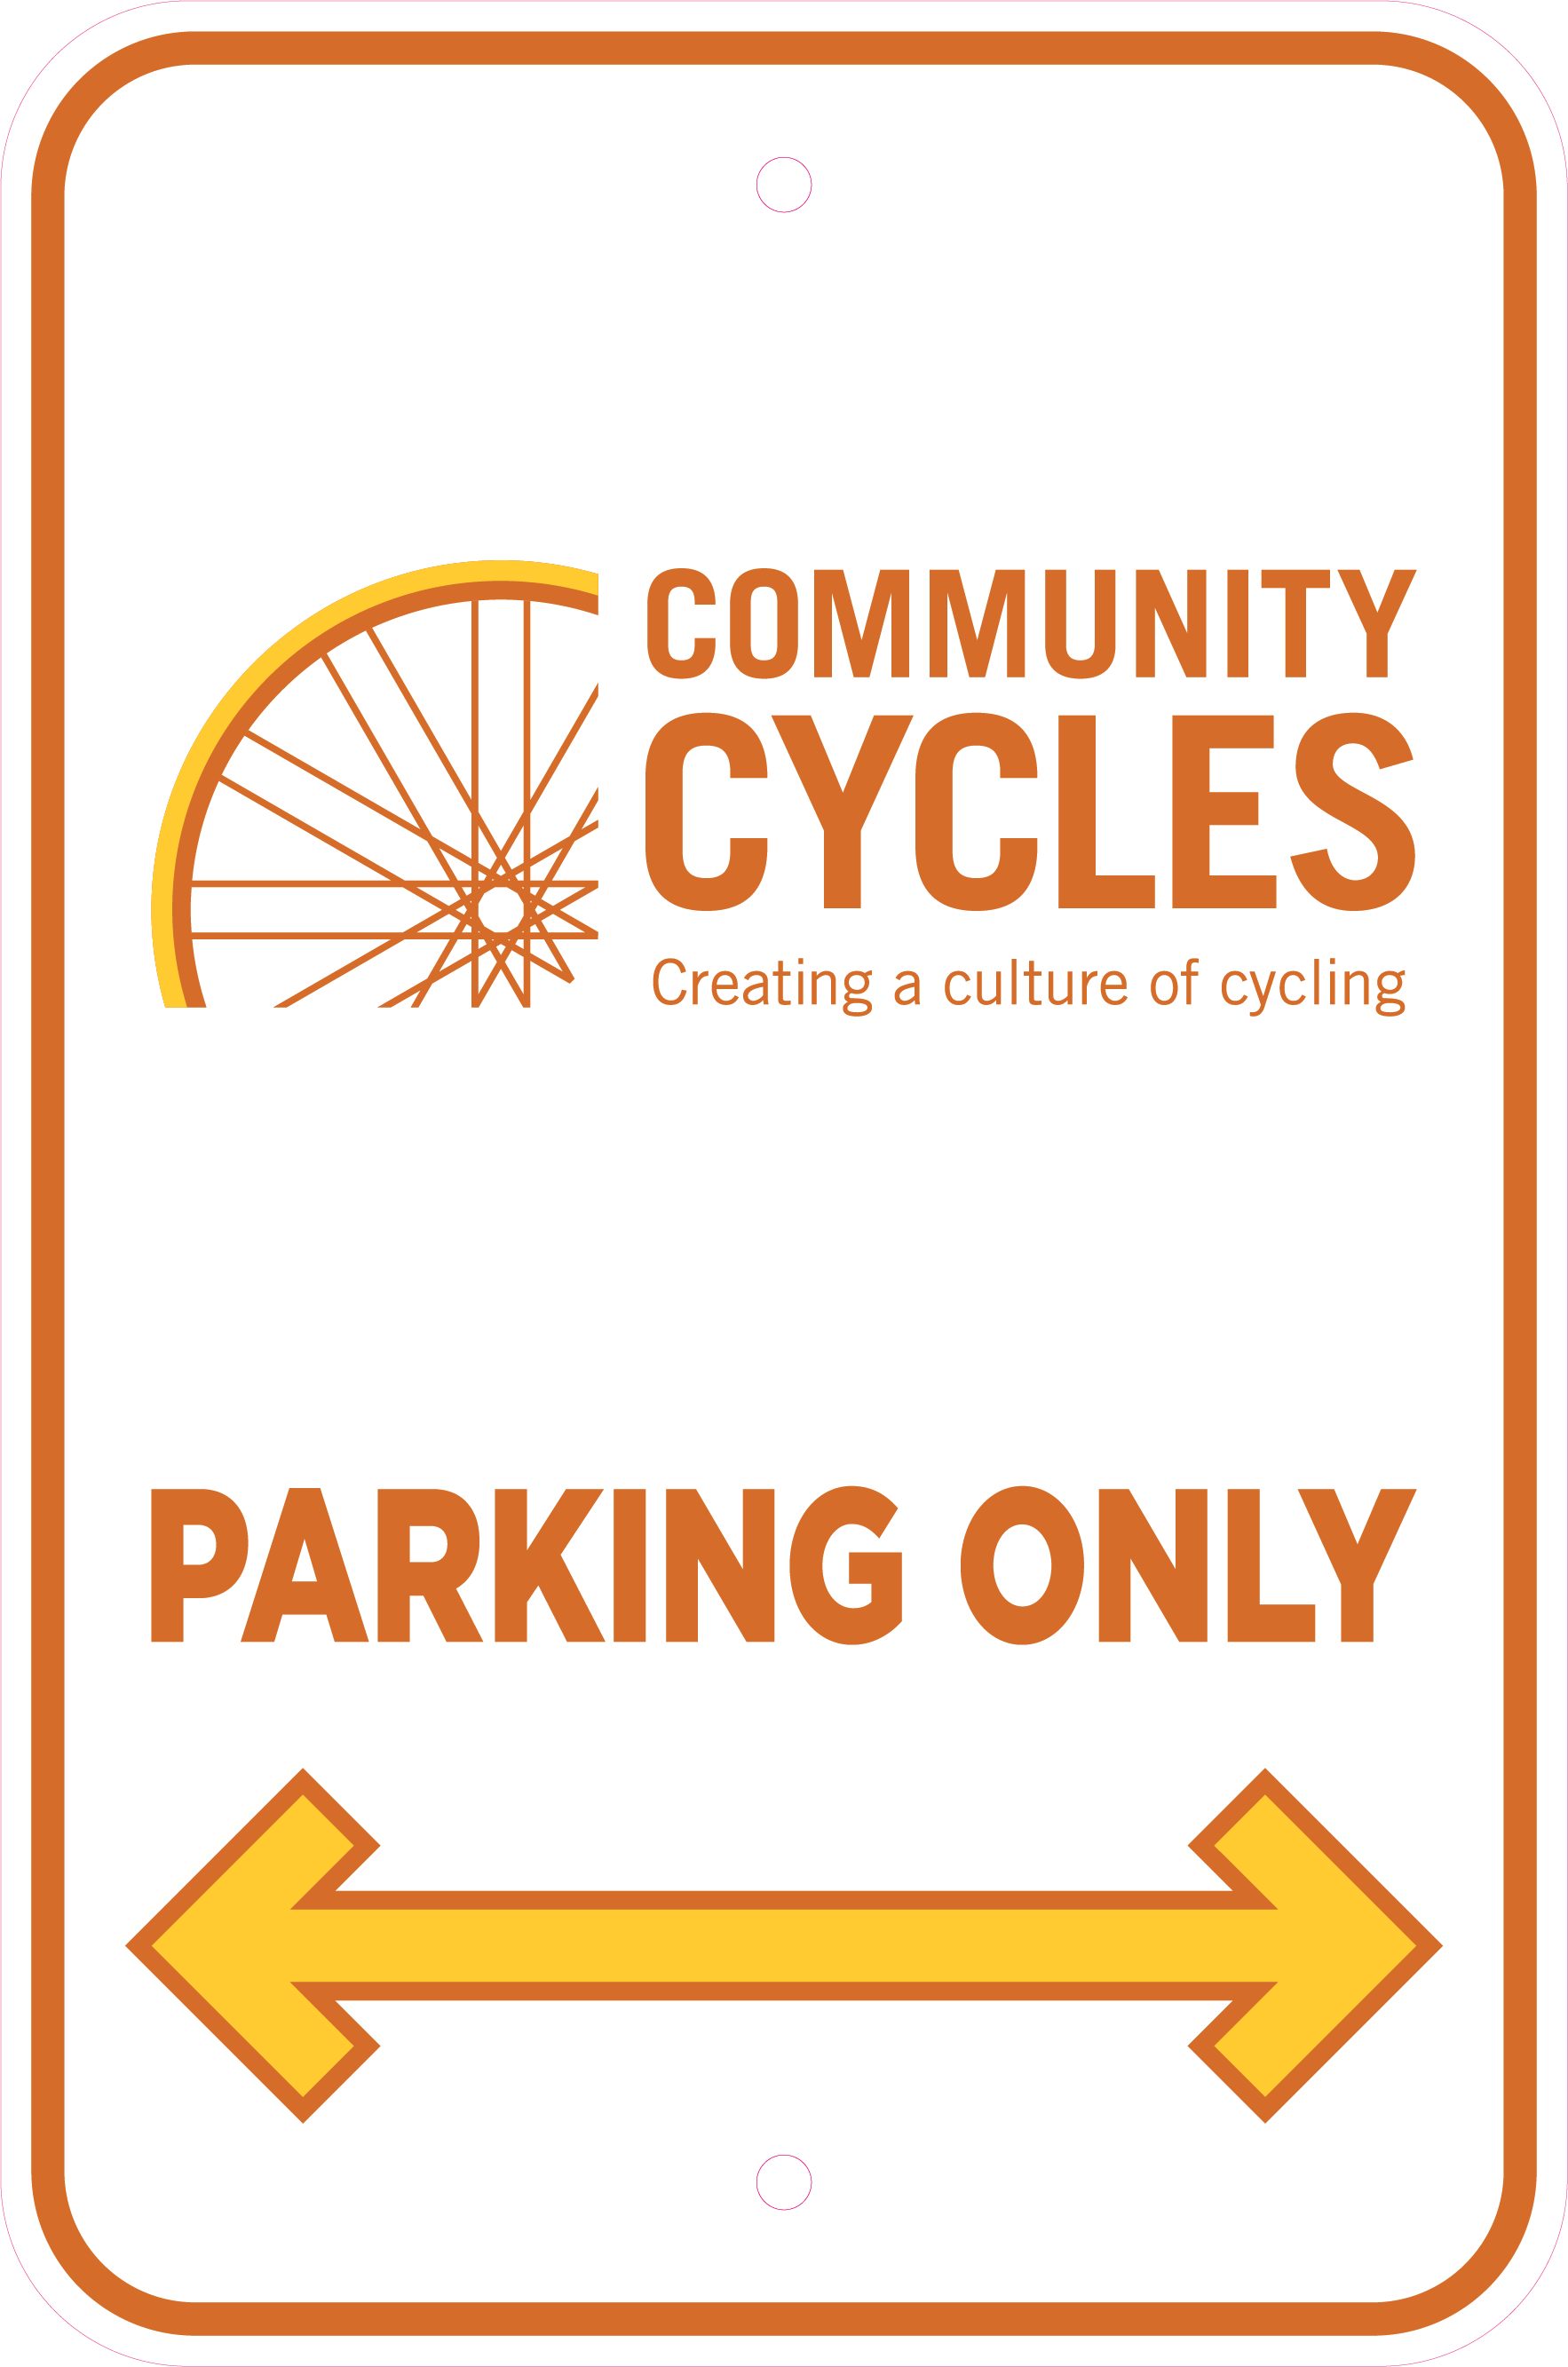 Element Properties Emily Inv. 93775 Items B&C 18x12 COMM CYCLES PARKING SIGNS Rev1 Proof 05-02-19-01.png